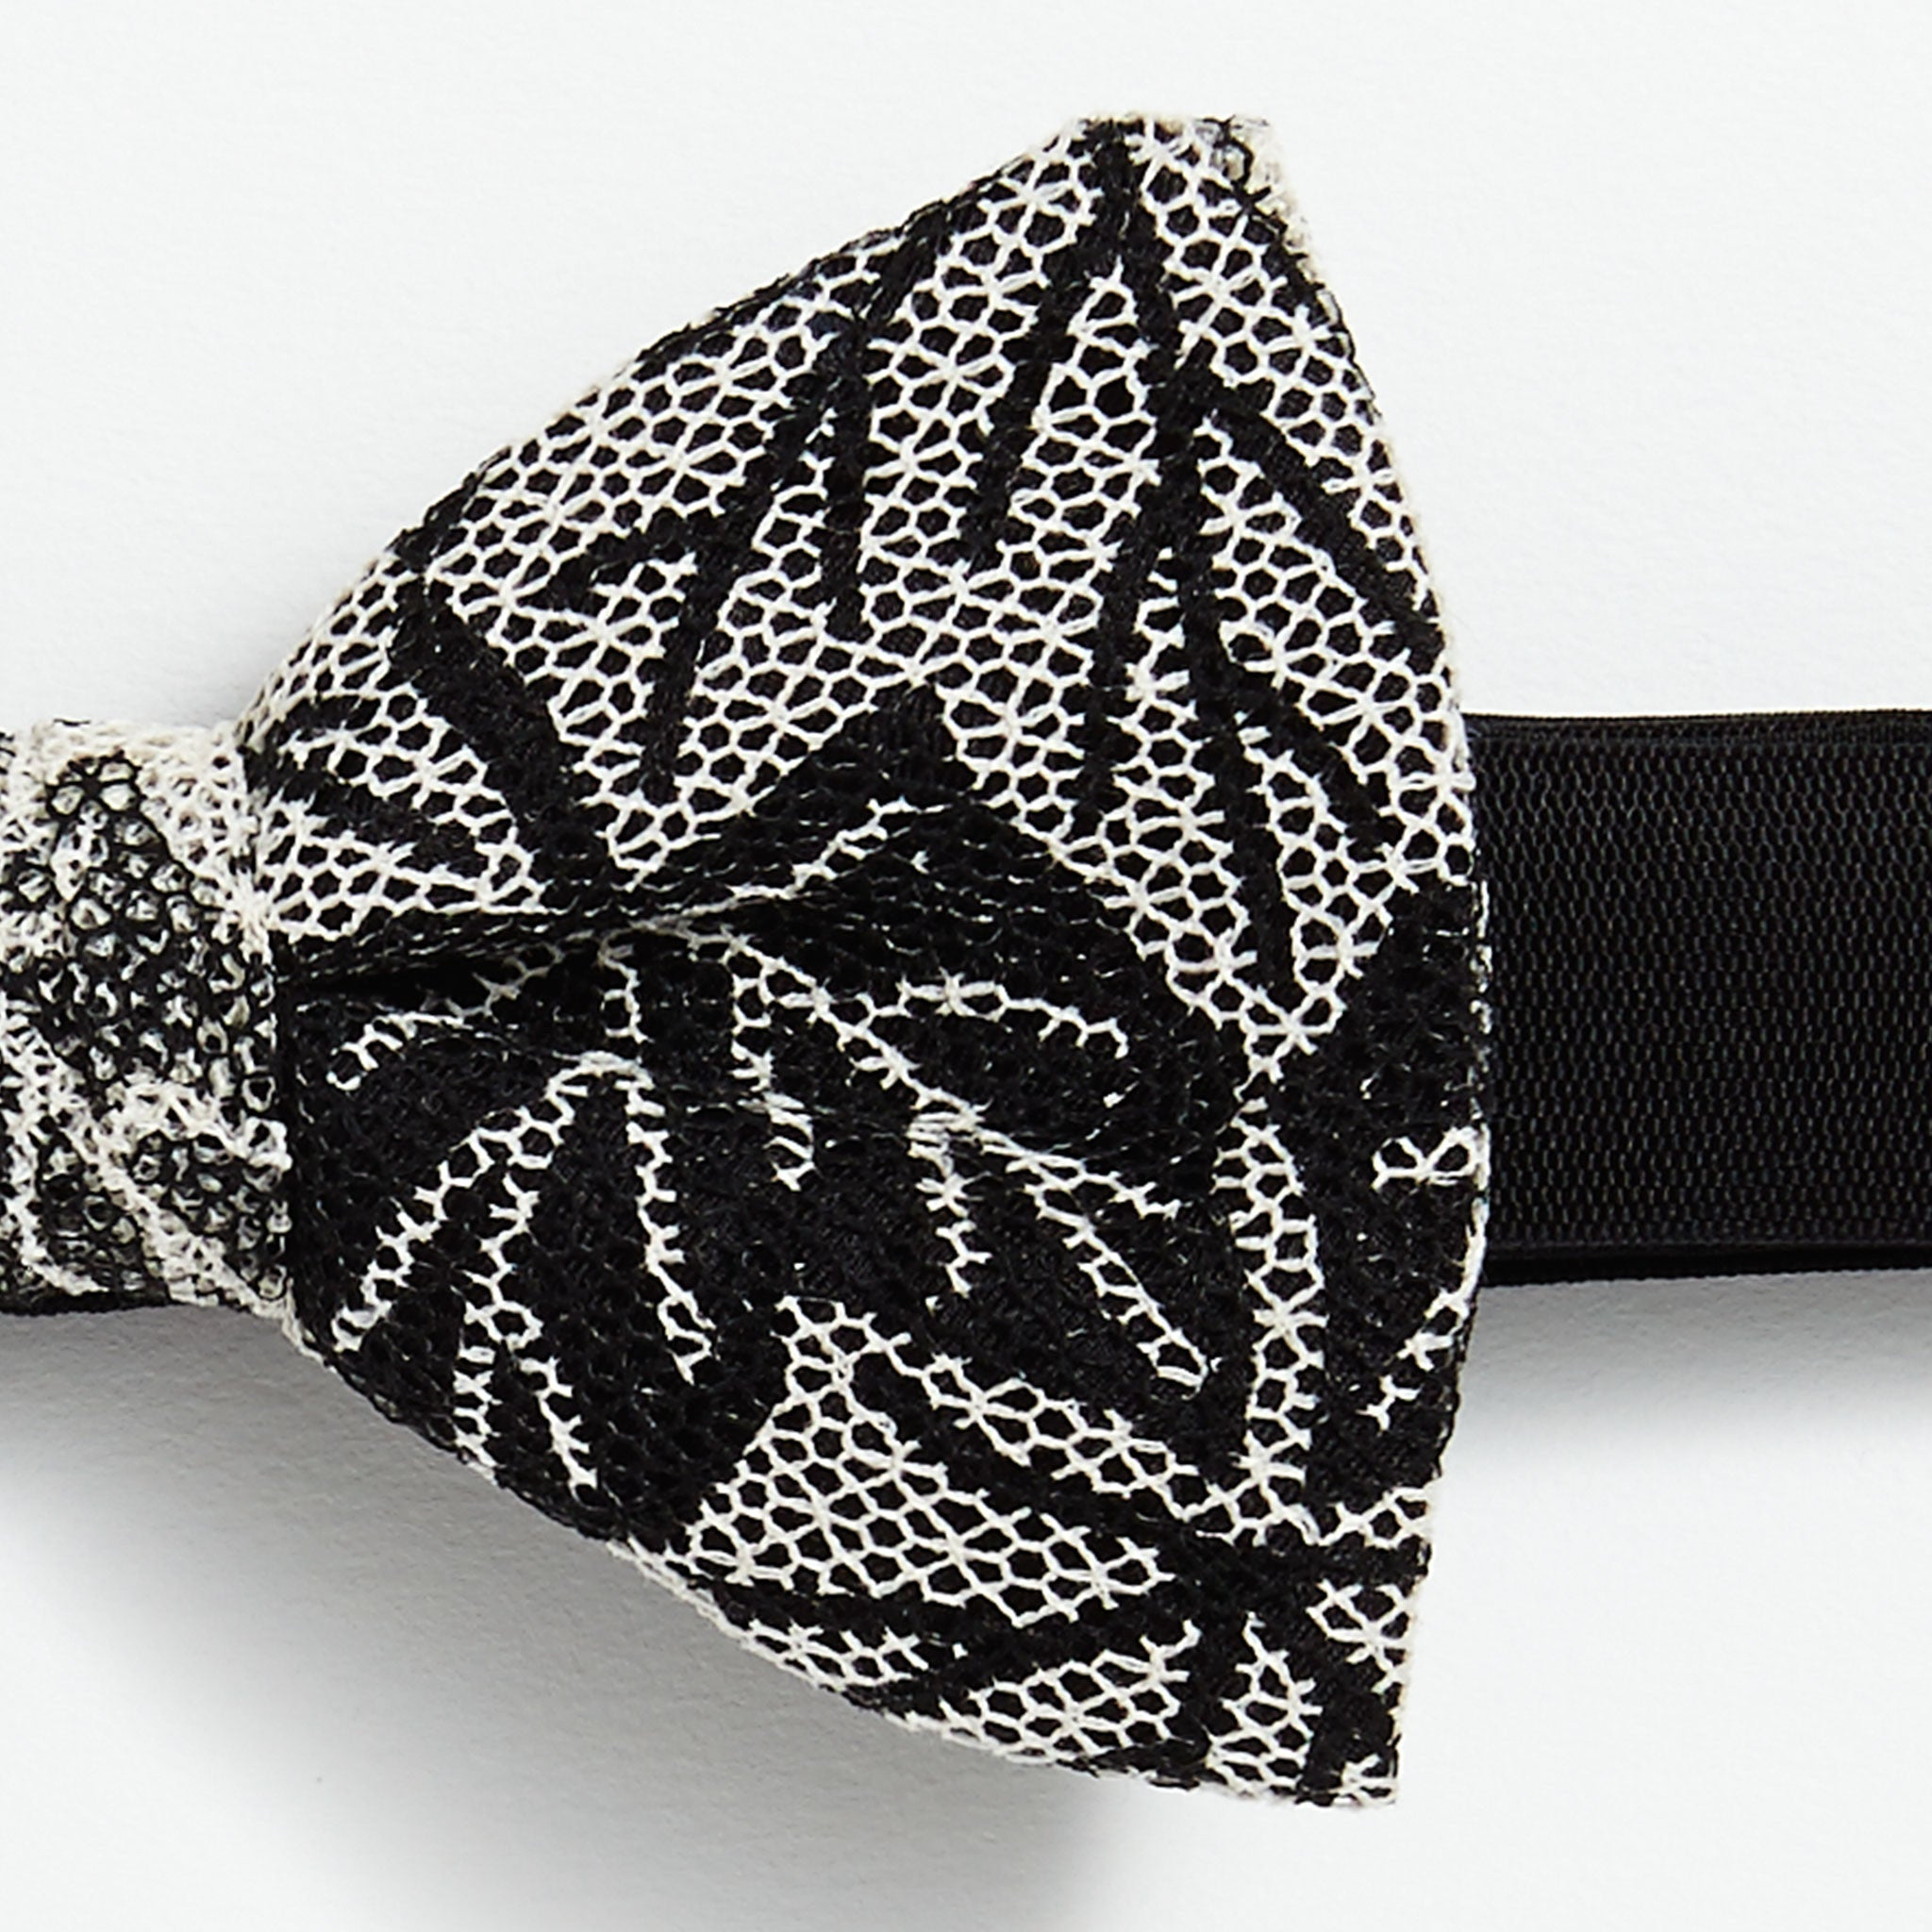 Marwood x All Fall In Printed Lace Pre-Tied Bow Tie